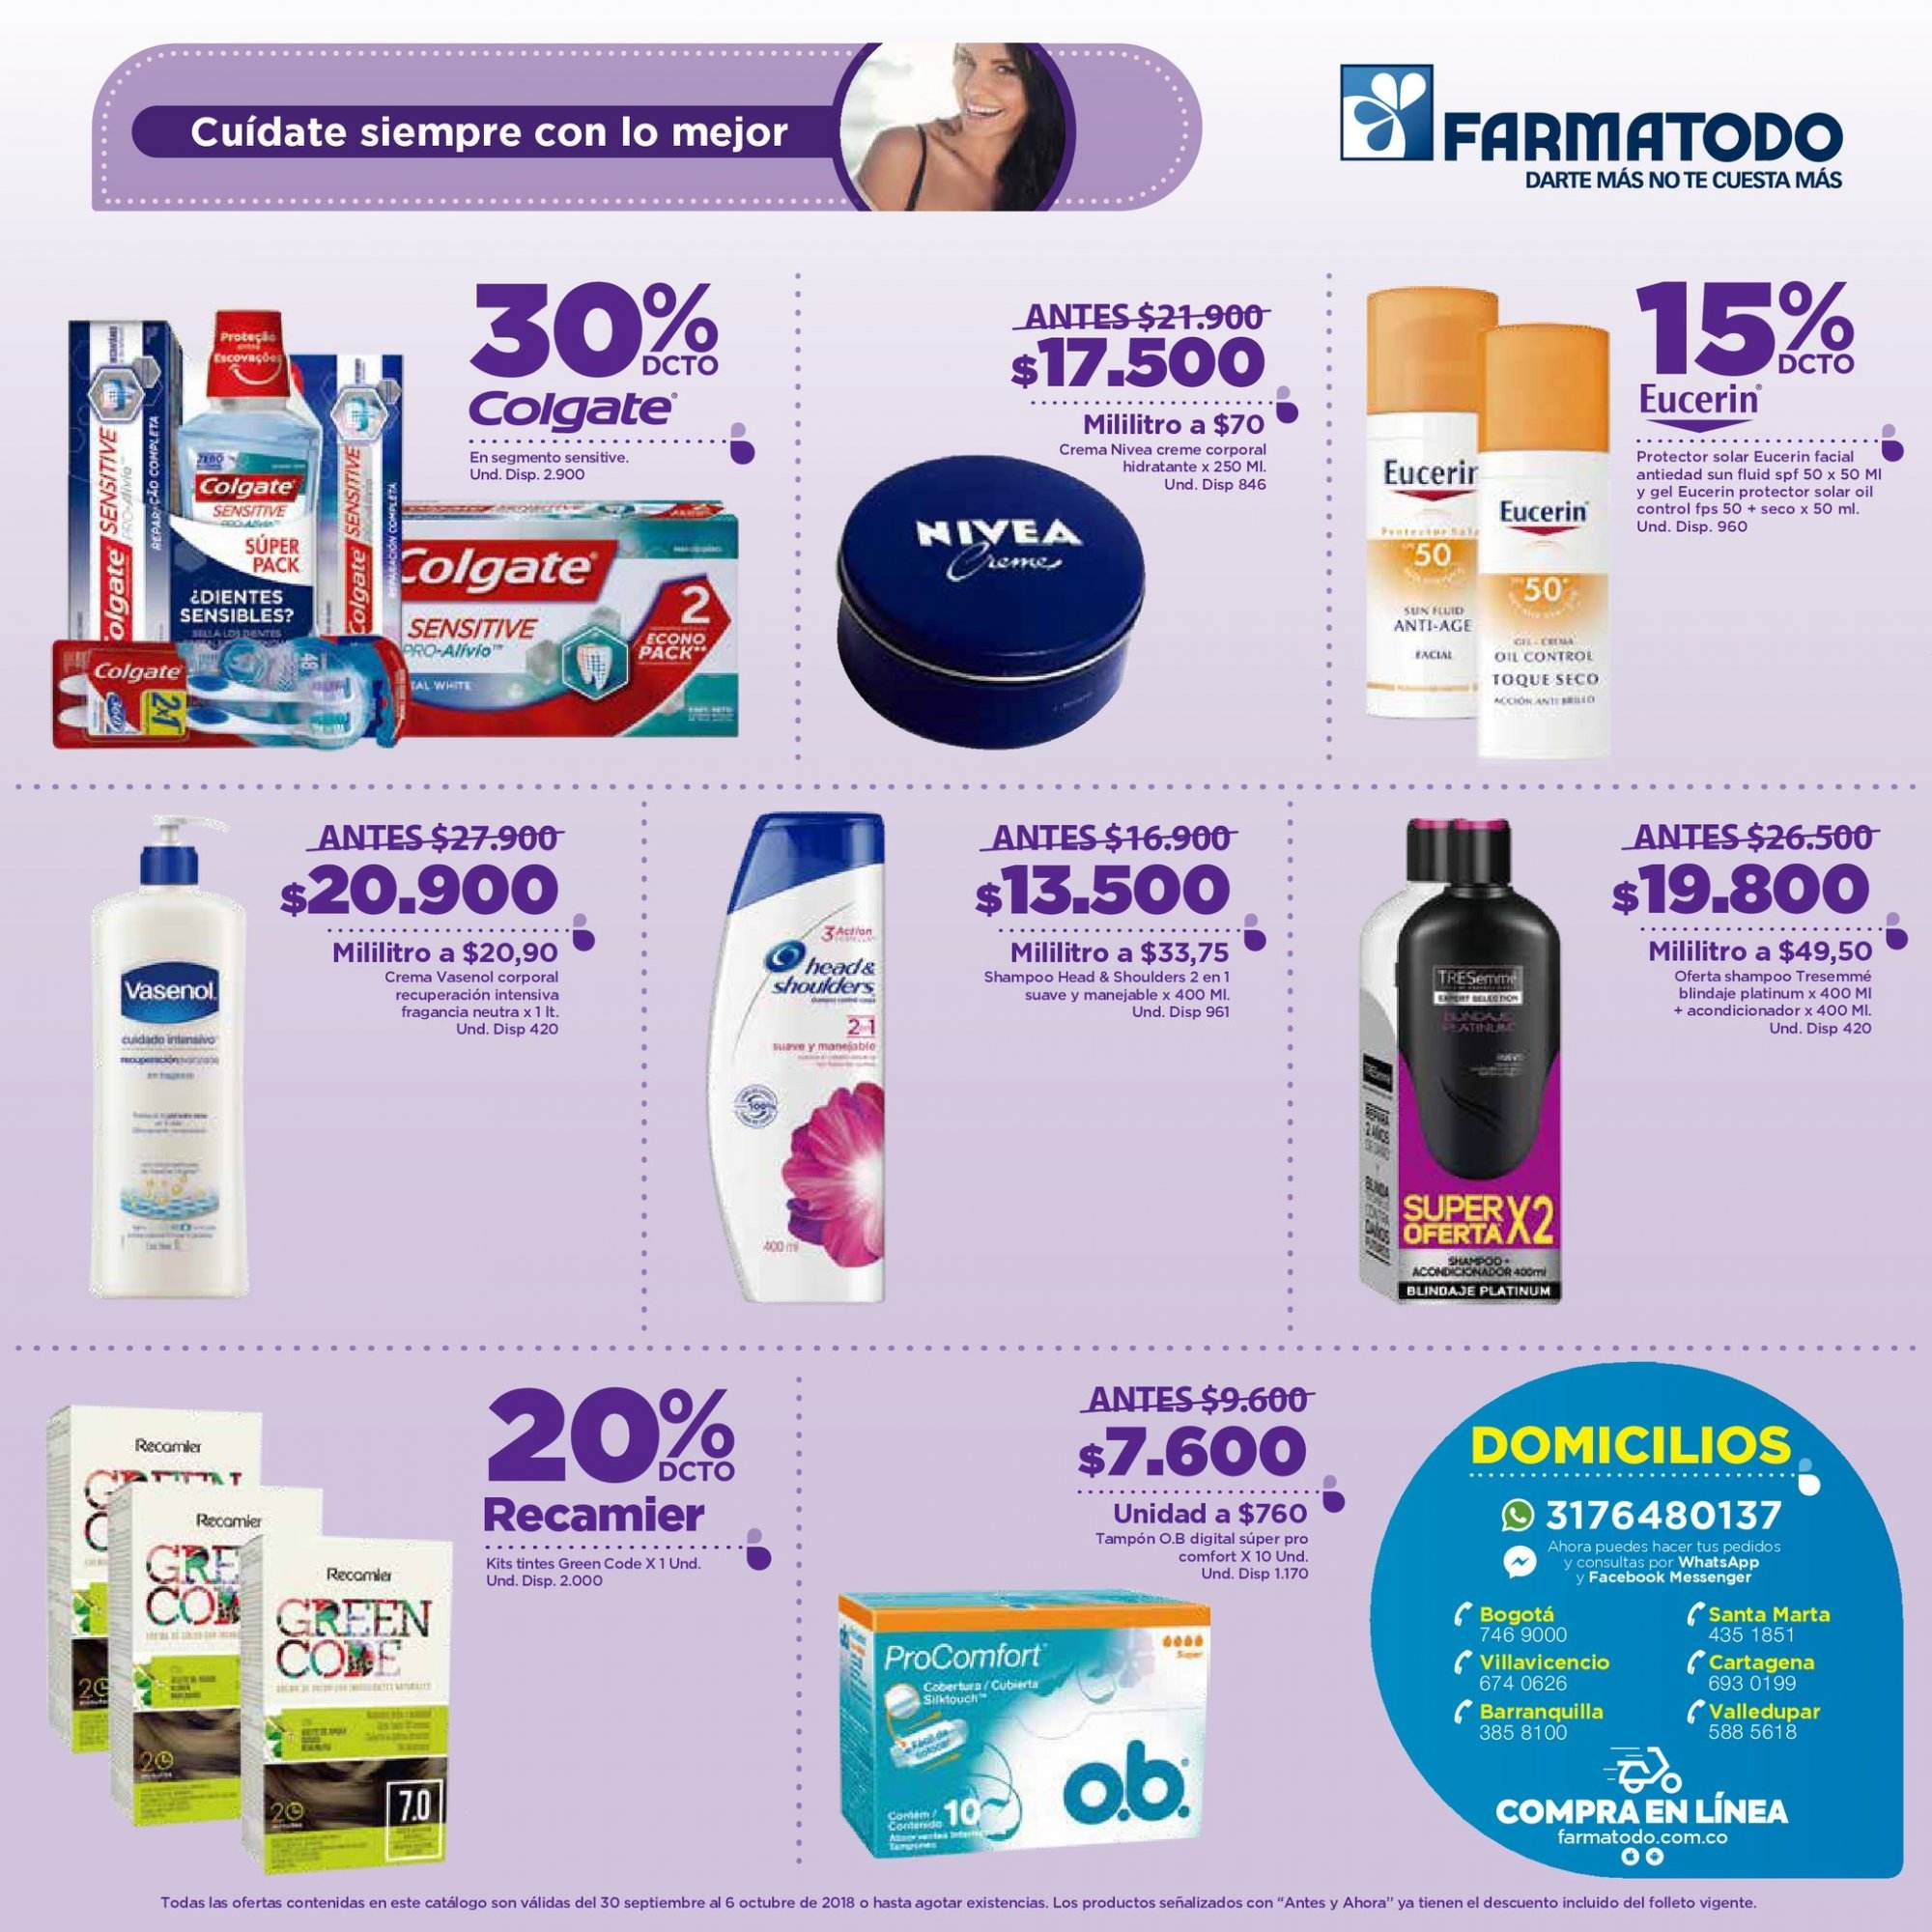 Folleto actual Farmatodo - 09.30.2018 - 10.06.2018 - Ventas - colgate, eucerin, head, head & shoulders, crema, nivea, gel, shampoo, protector solar, acondicionador, oil. Página 3.